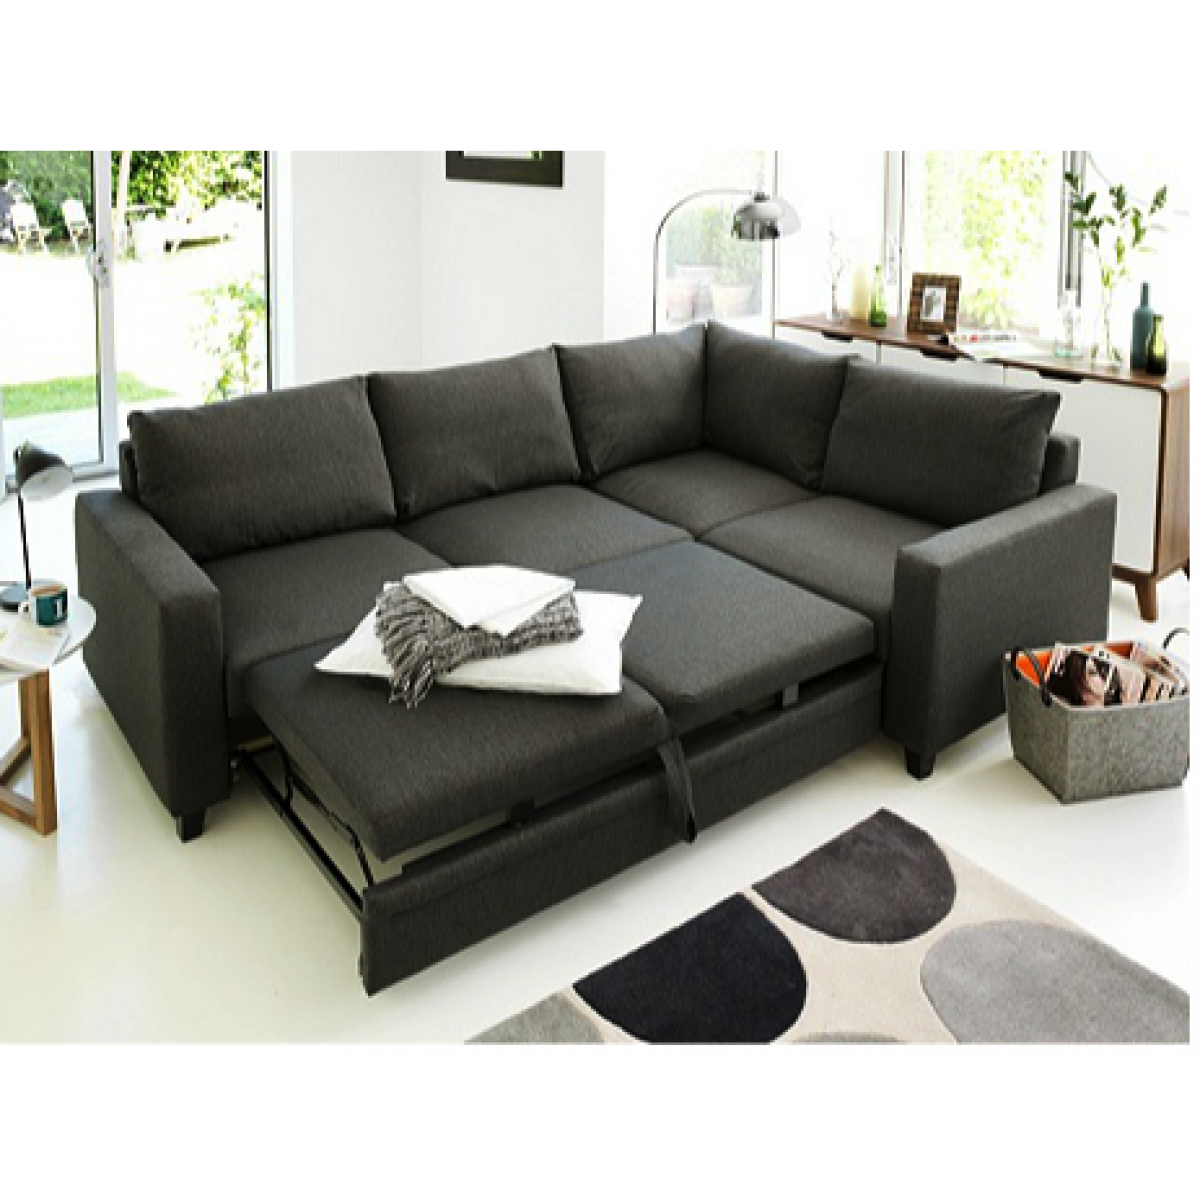 Get The Best In Both World Functionality And Elegance With Corner Sofa Beds Corner Sofa Living Room Sofa Bed Living Room Corner Sofa Small Living Room